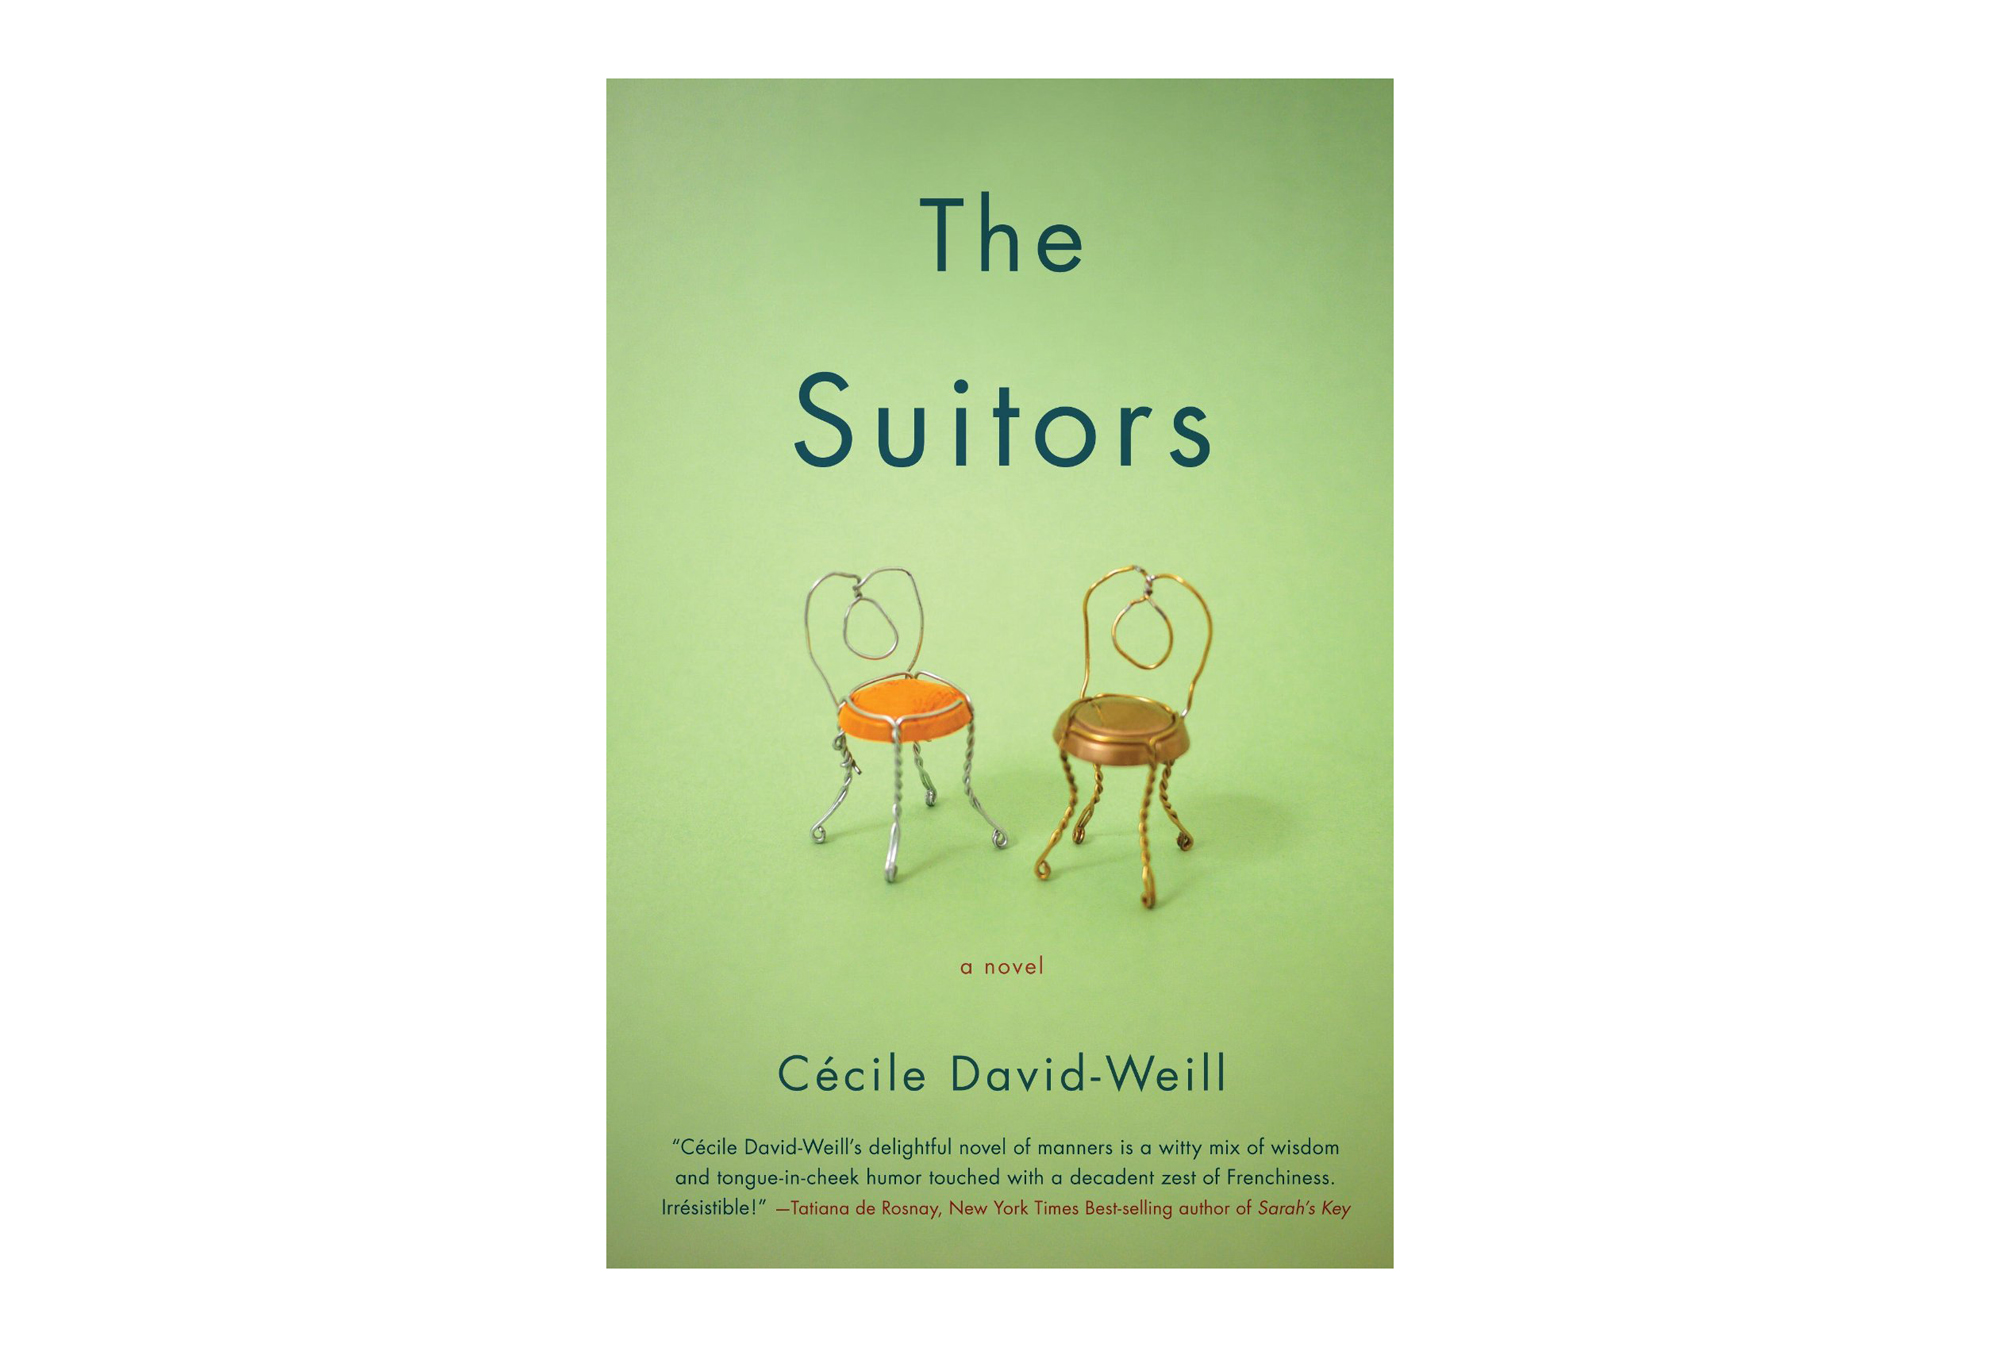 The Suitors, by Cėcile David-Weill